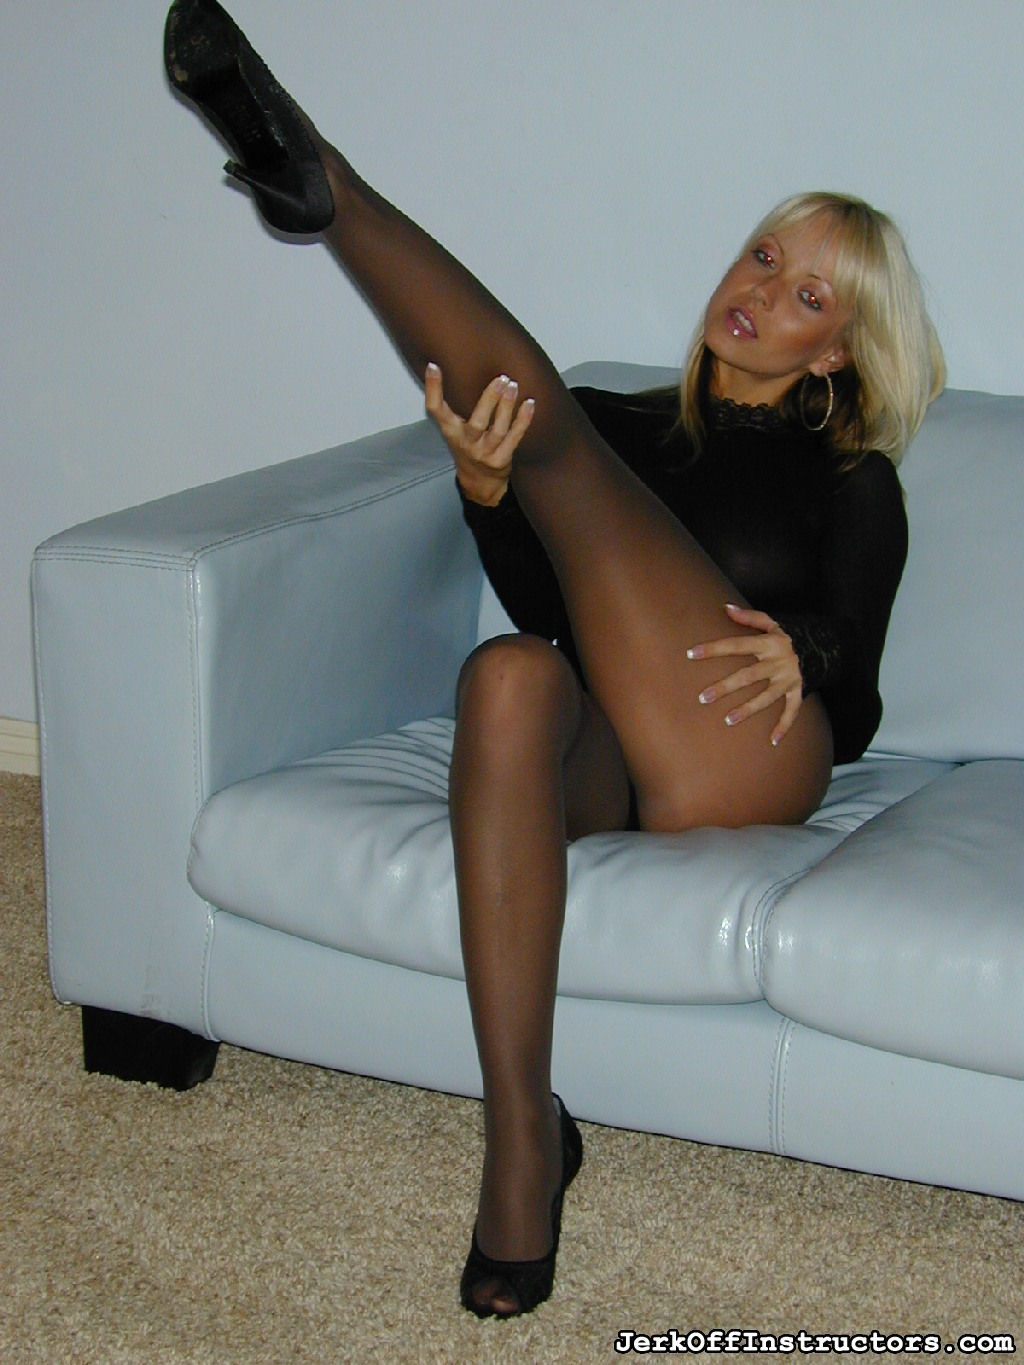 Little tool  in a black body suit and black pantyhose jana cova towers over you are you playing with your little tool she teases. In a black body suit and black pantyhose, Jana Cova towers over you,